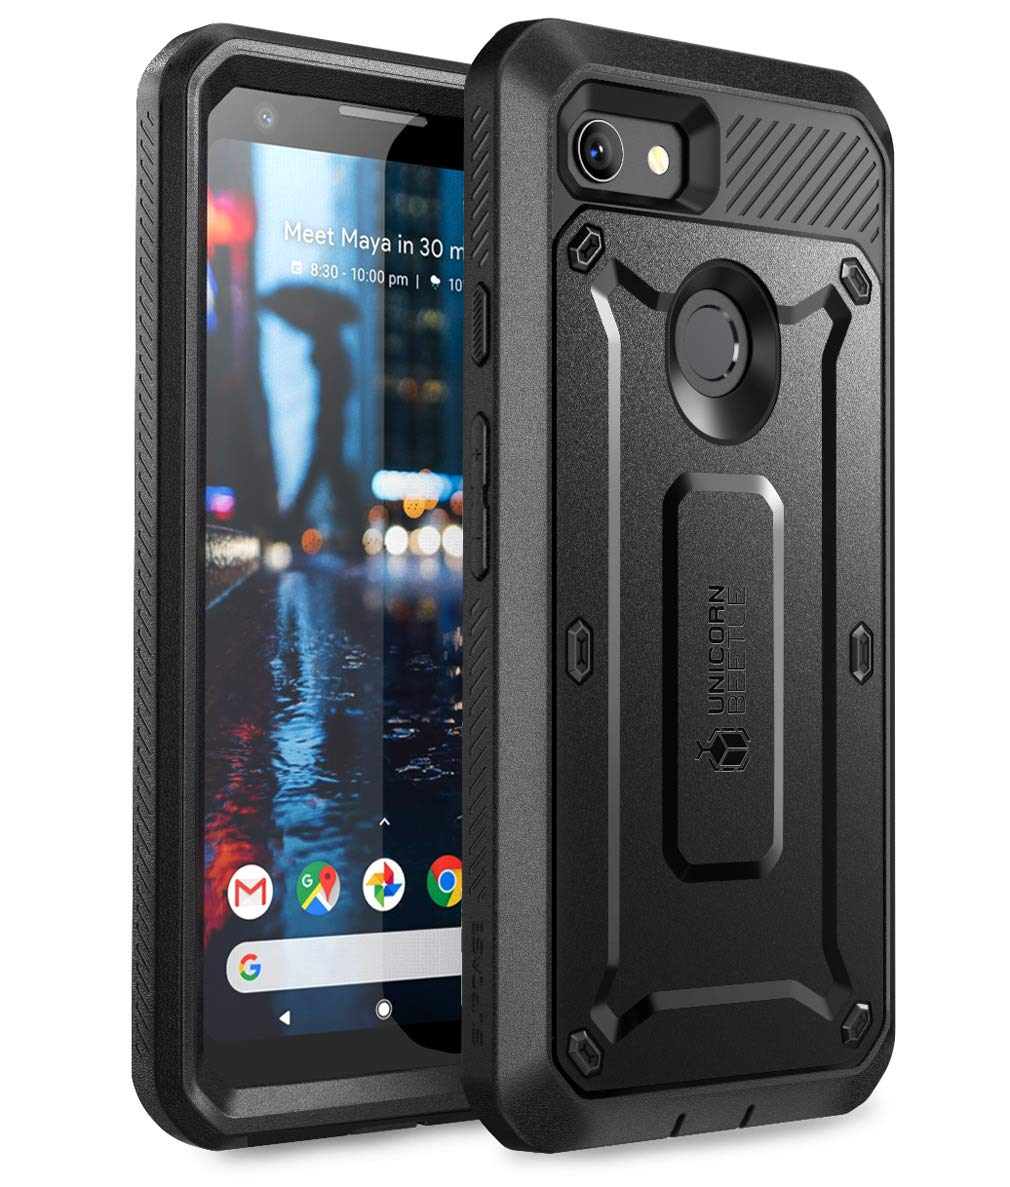 SUPCASE Unicorn Beetle Pro Series Designed for Google Pixel 3a Case, Full-Body Rugged Holster Case with Built-in Screen Protector for Google Pixel 3a 2019 Release (Black)